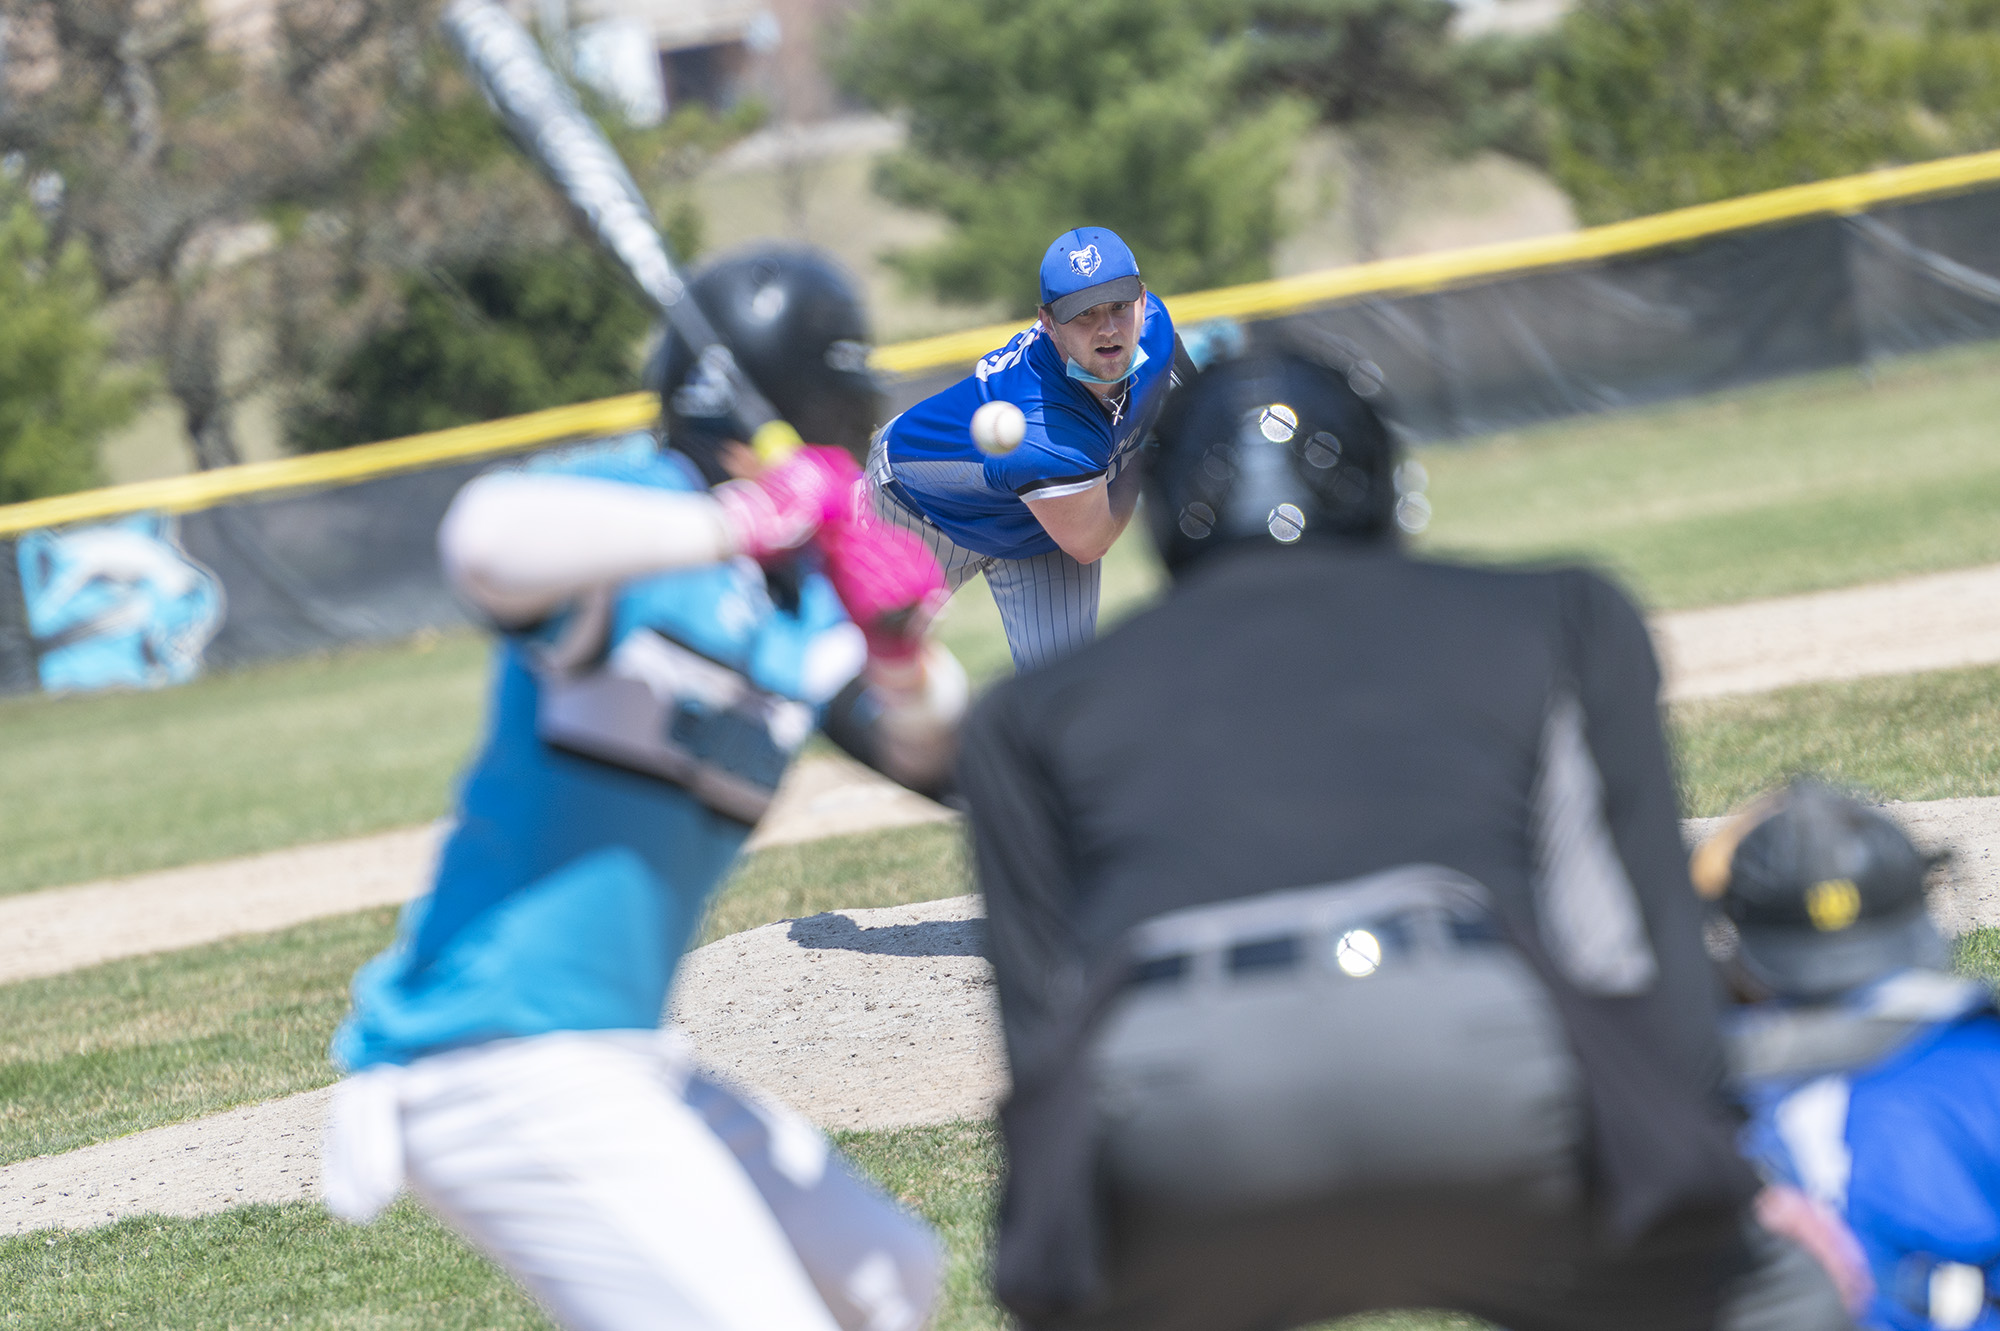 A KCC pitcher pitches to a batter.